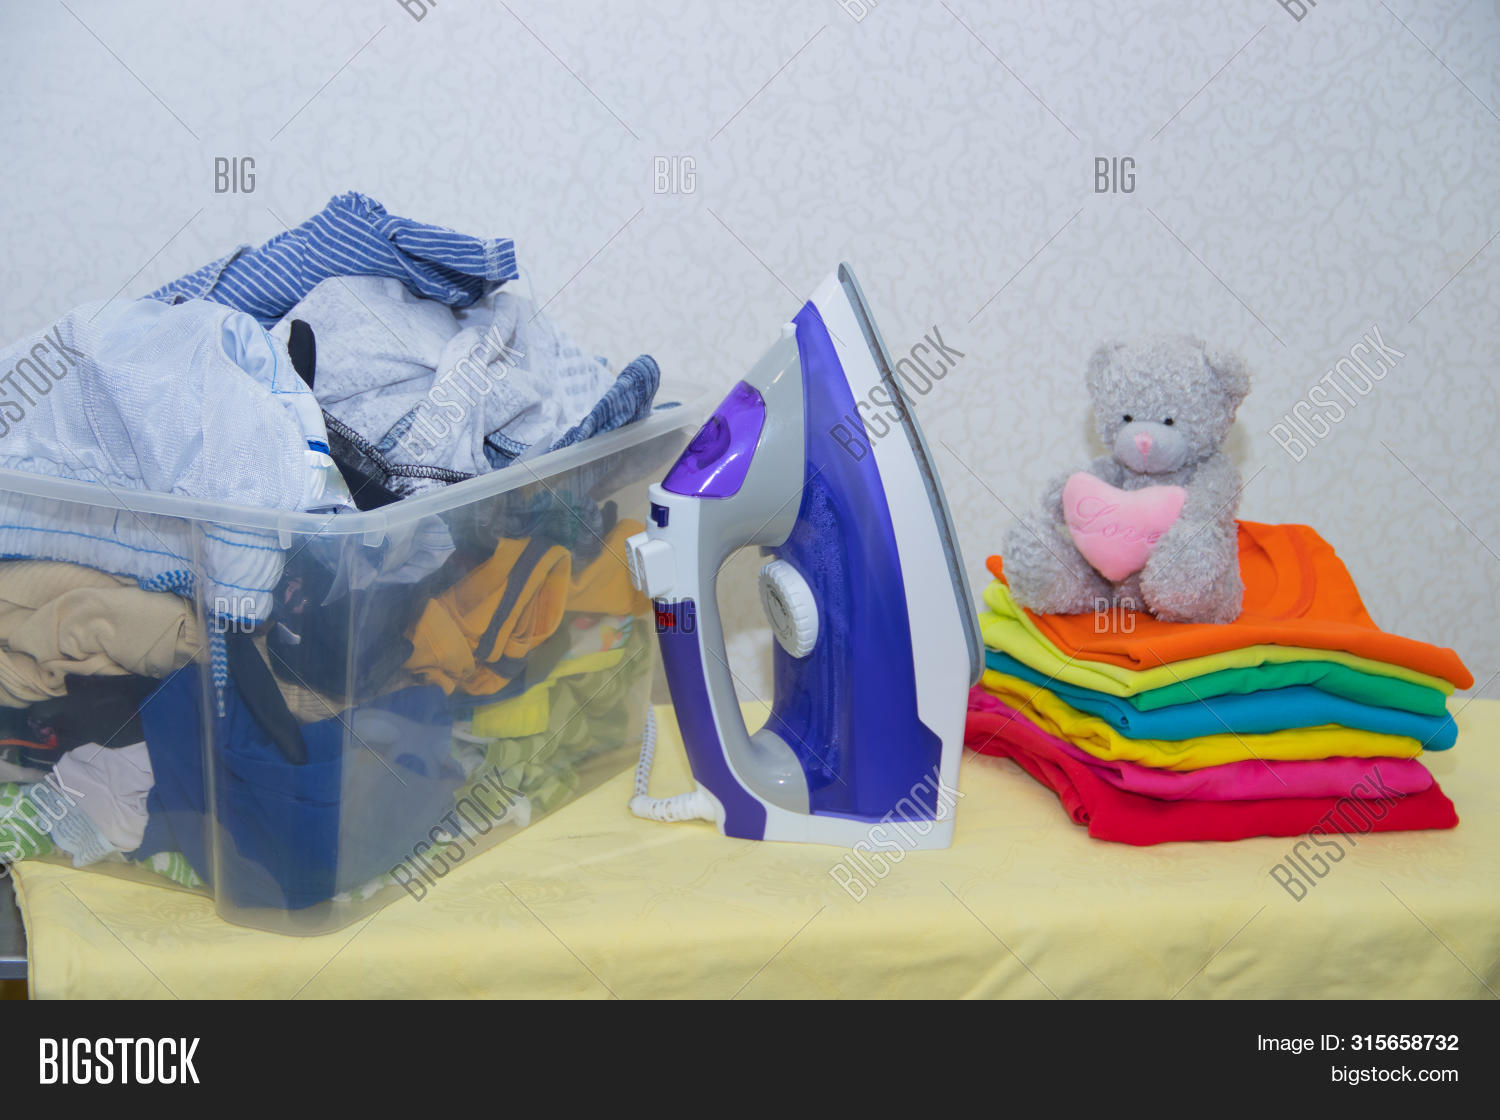 Iron And Baby Clothes. Colored Clothes On An Ironing Board. Bright T-shirts. Ironed And Non-ironed C